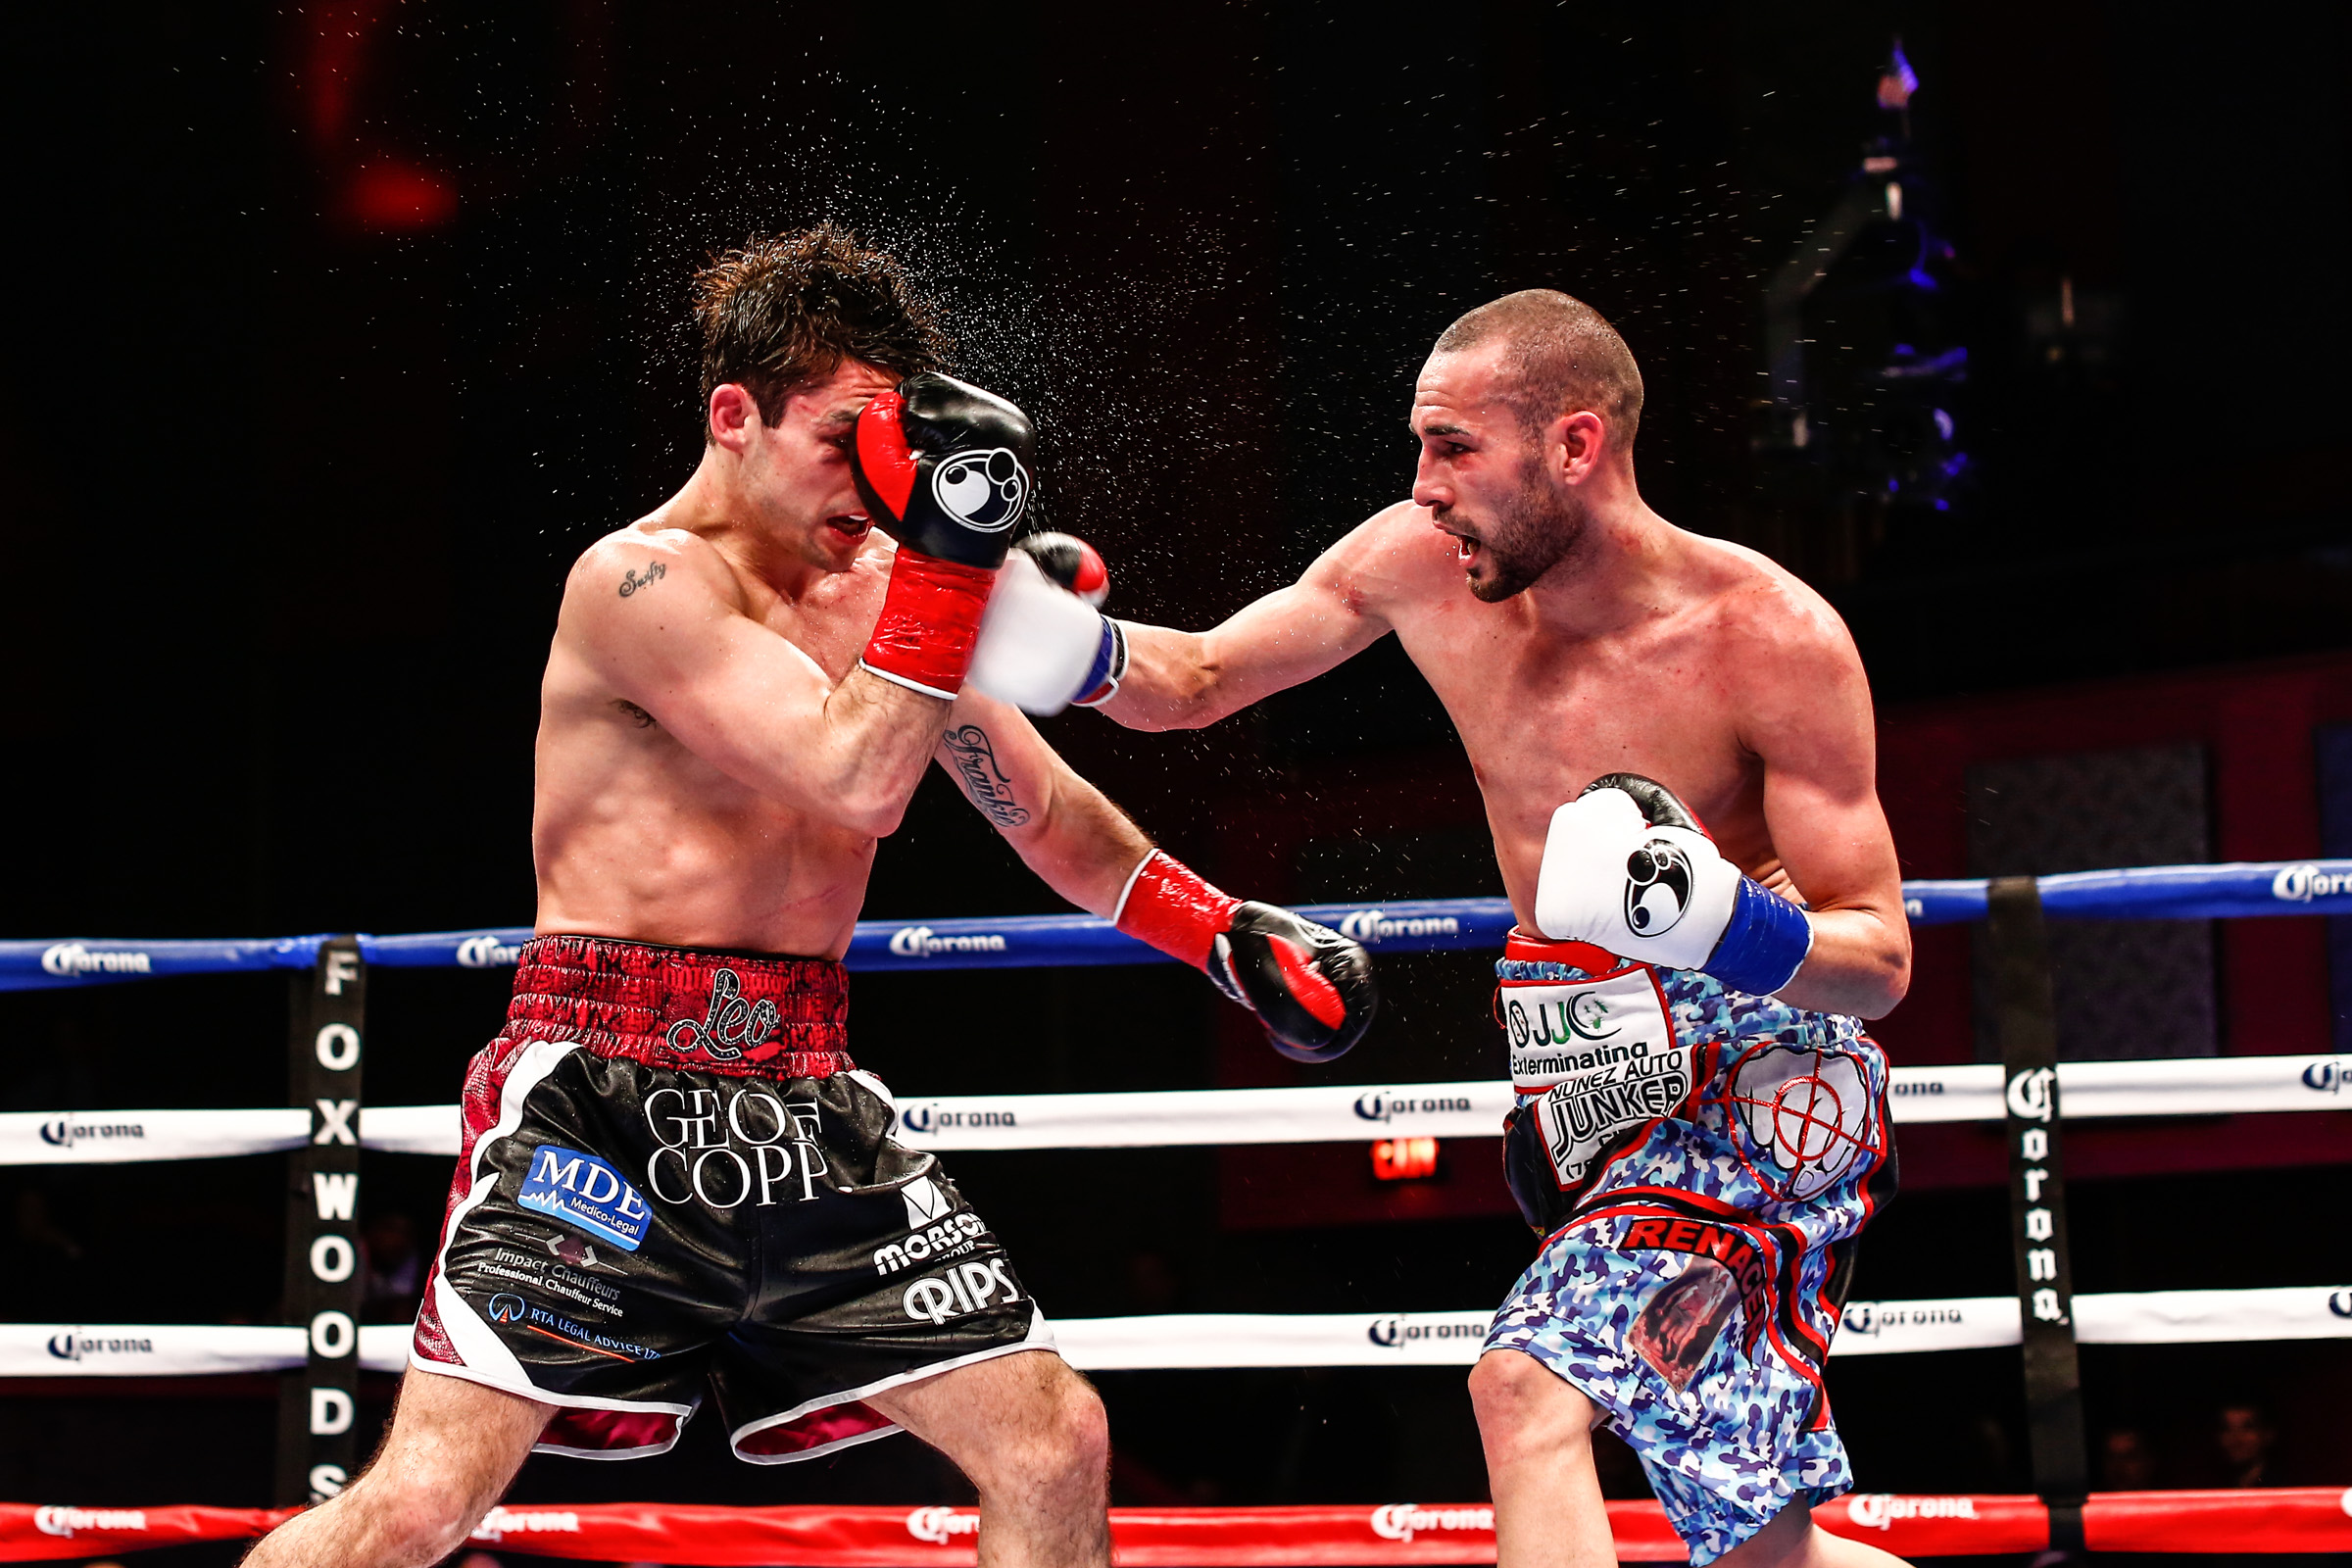 Jose Pedraza vs Stephen Smith